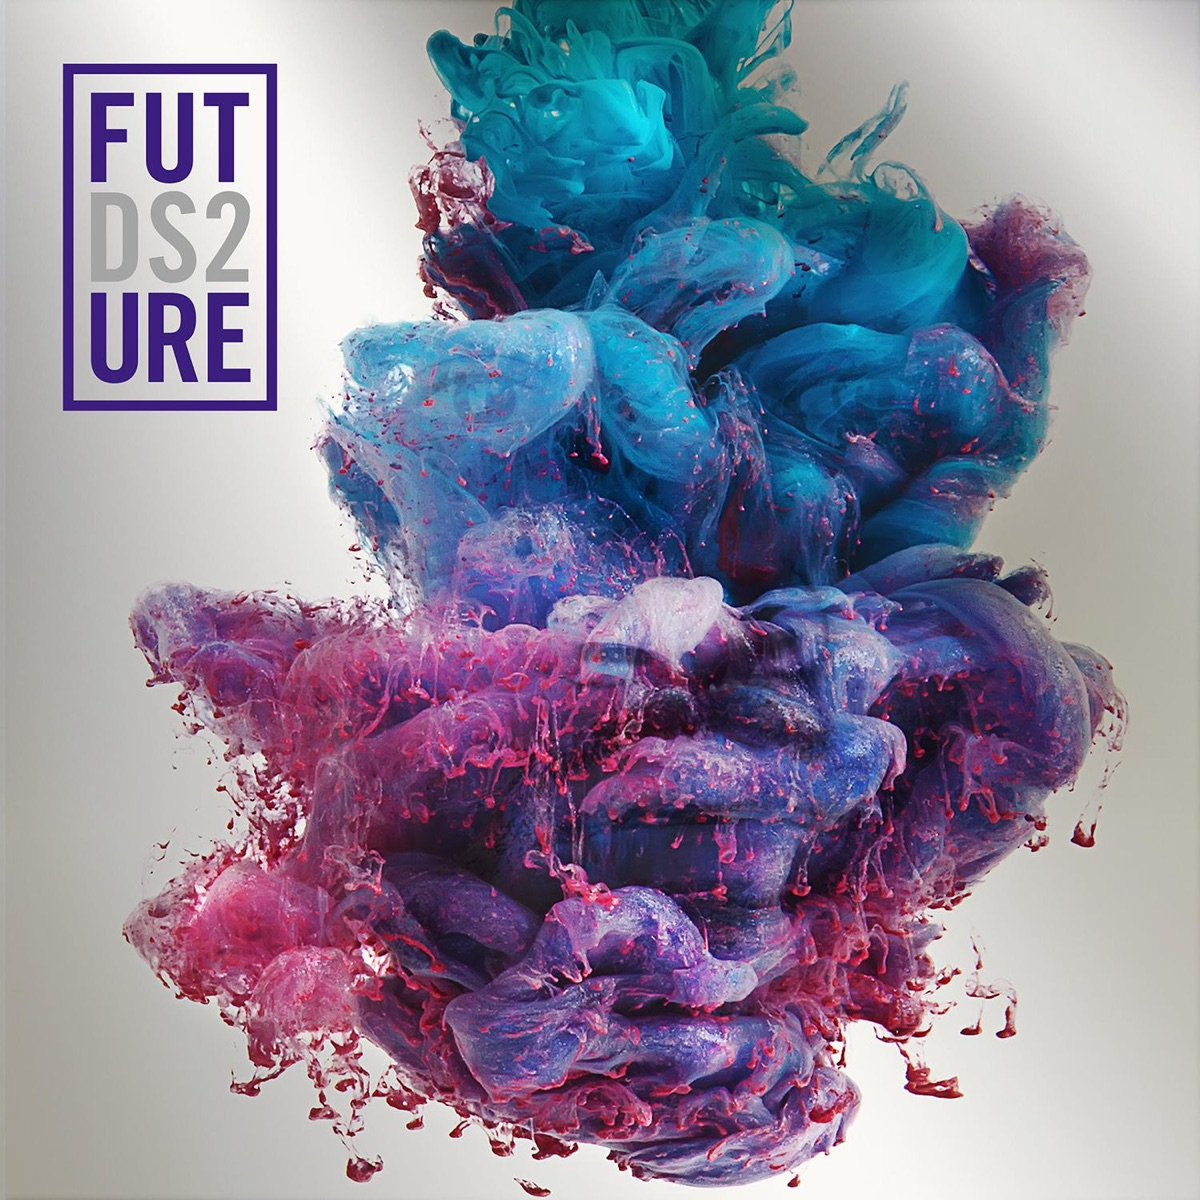 DS2 Deluxe Future CD cover